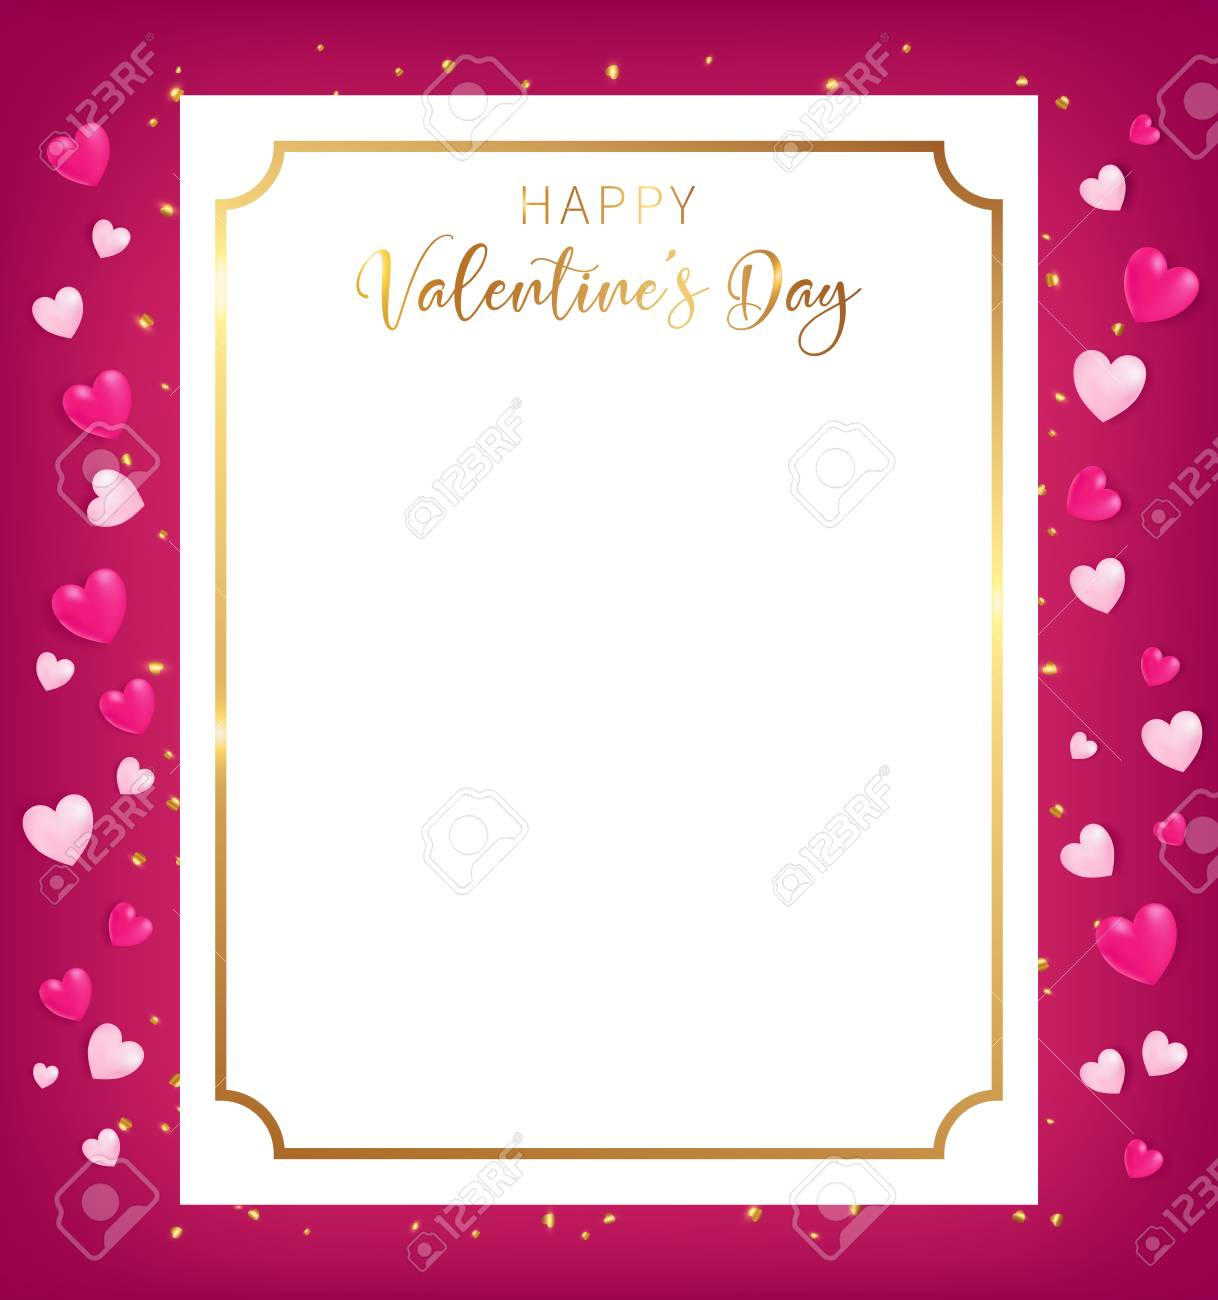 Art Decoration Conception Happy Valentine S Day Banner Conception As Top View Position